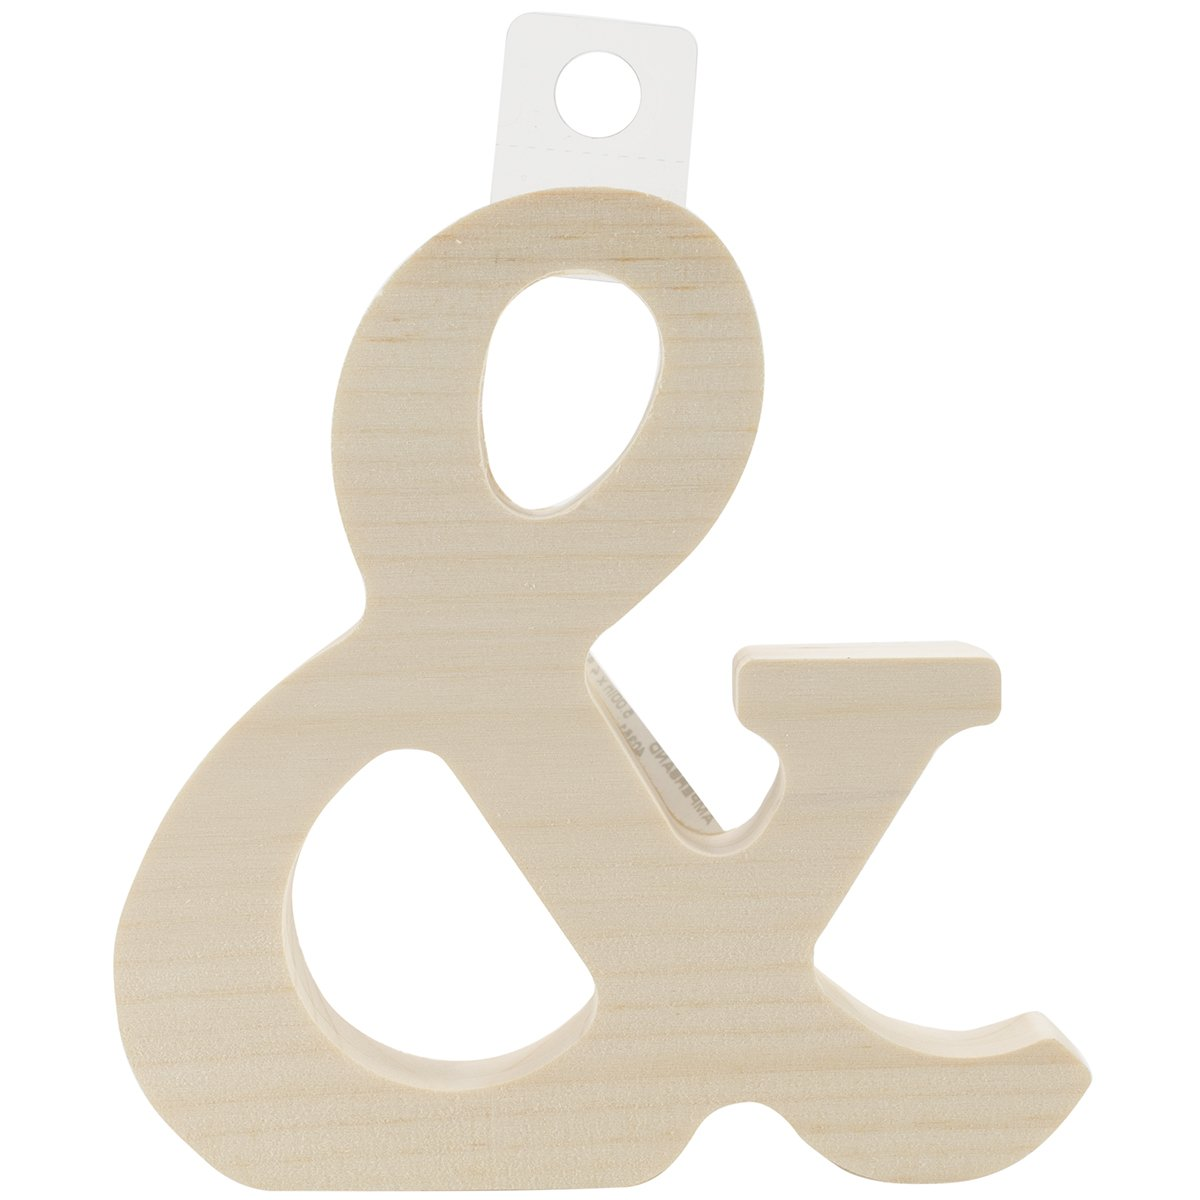 Walnut Hollow Wood Letter, 5 by 0.63-Inch, Ampersand 262WH-40351